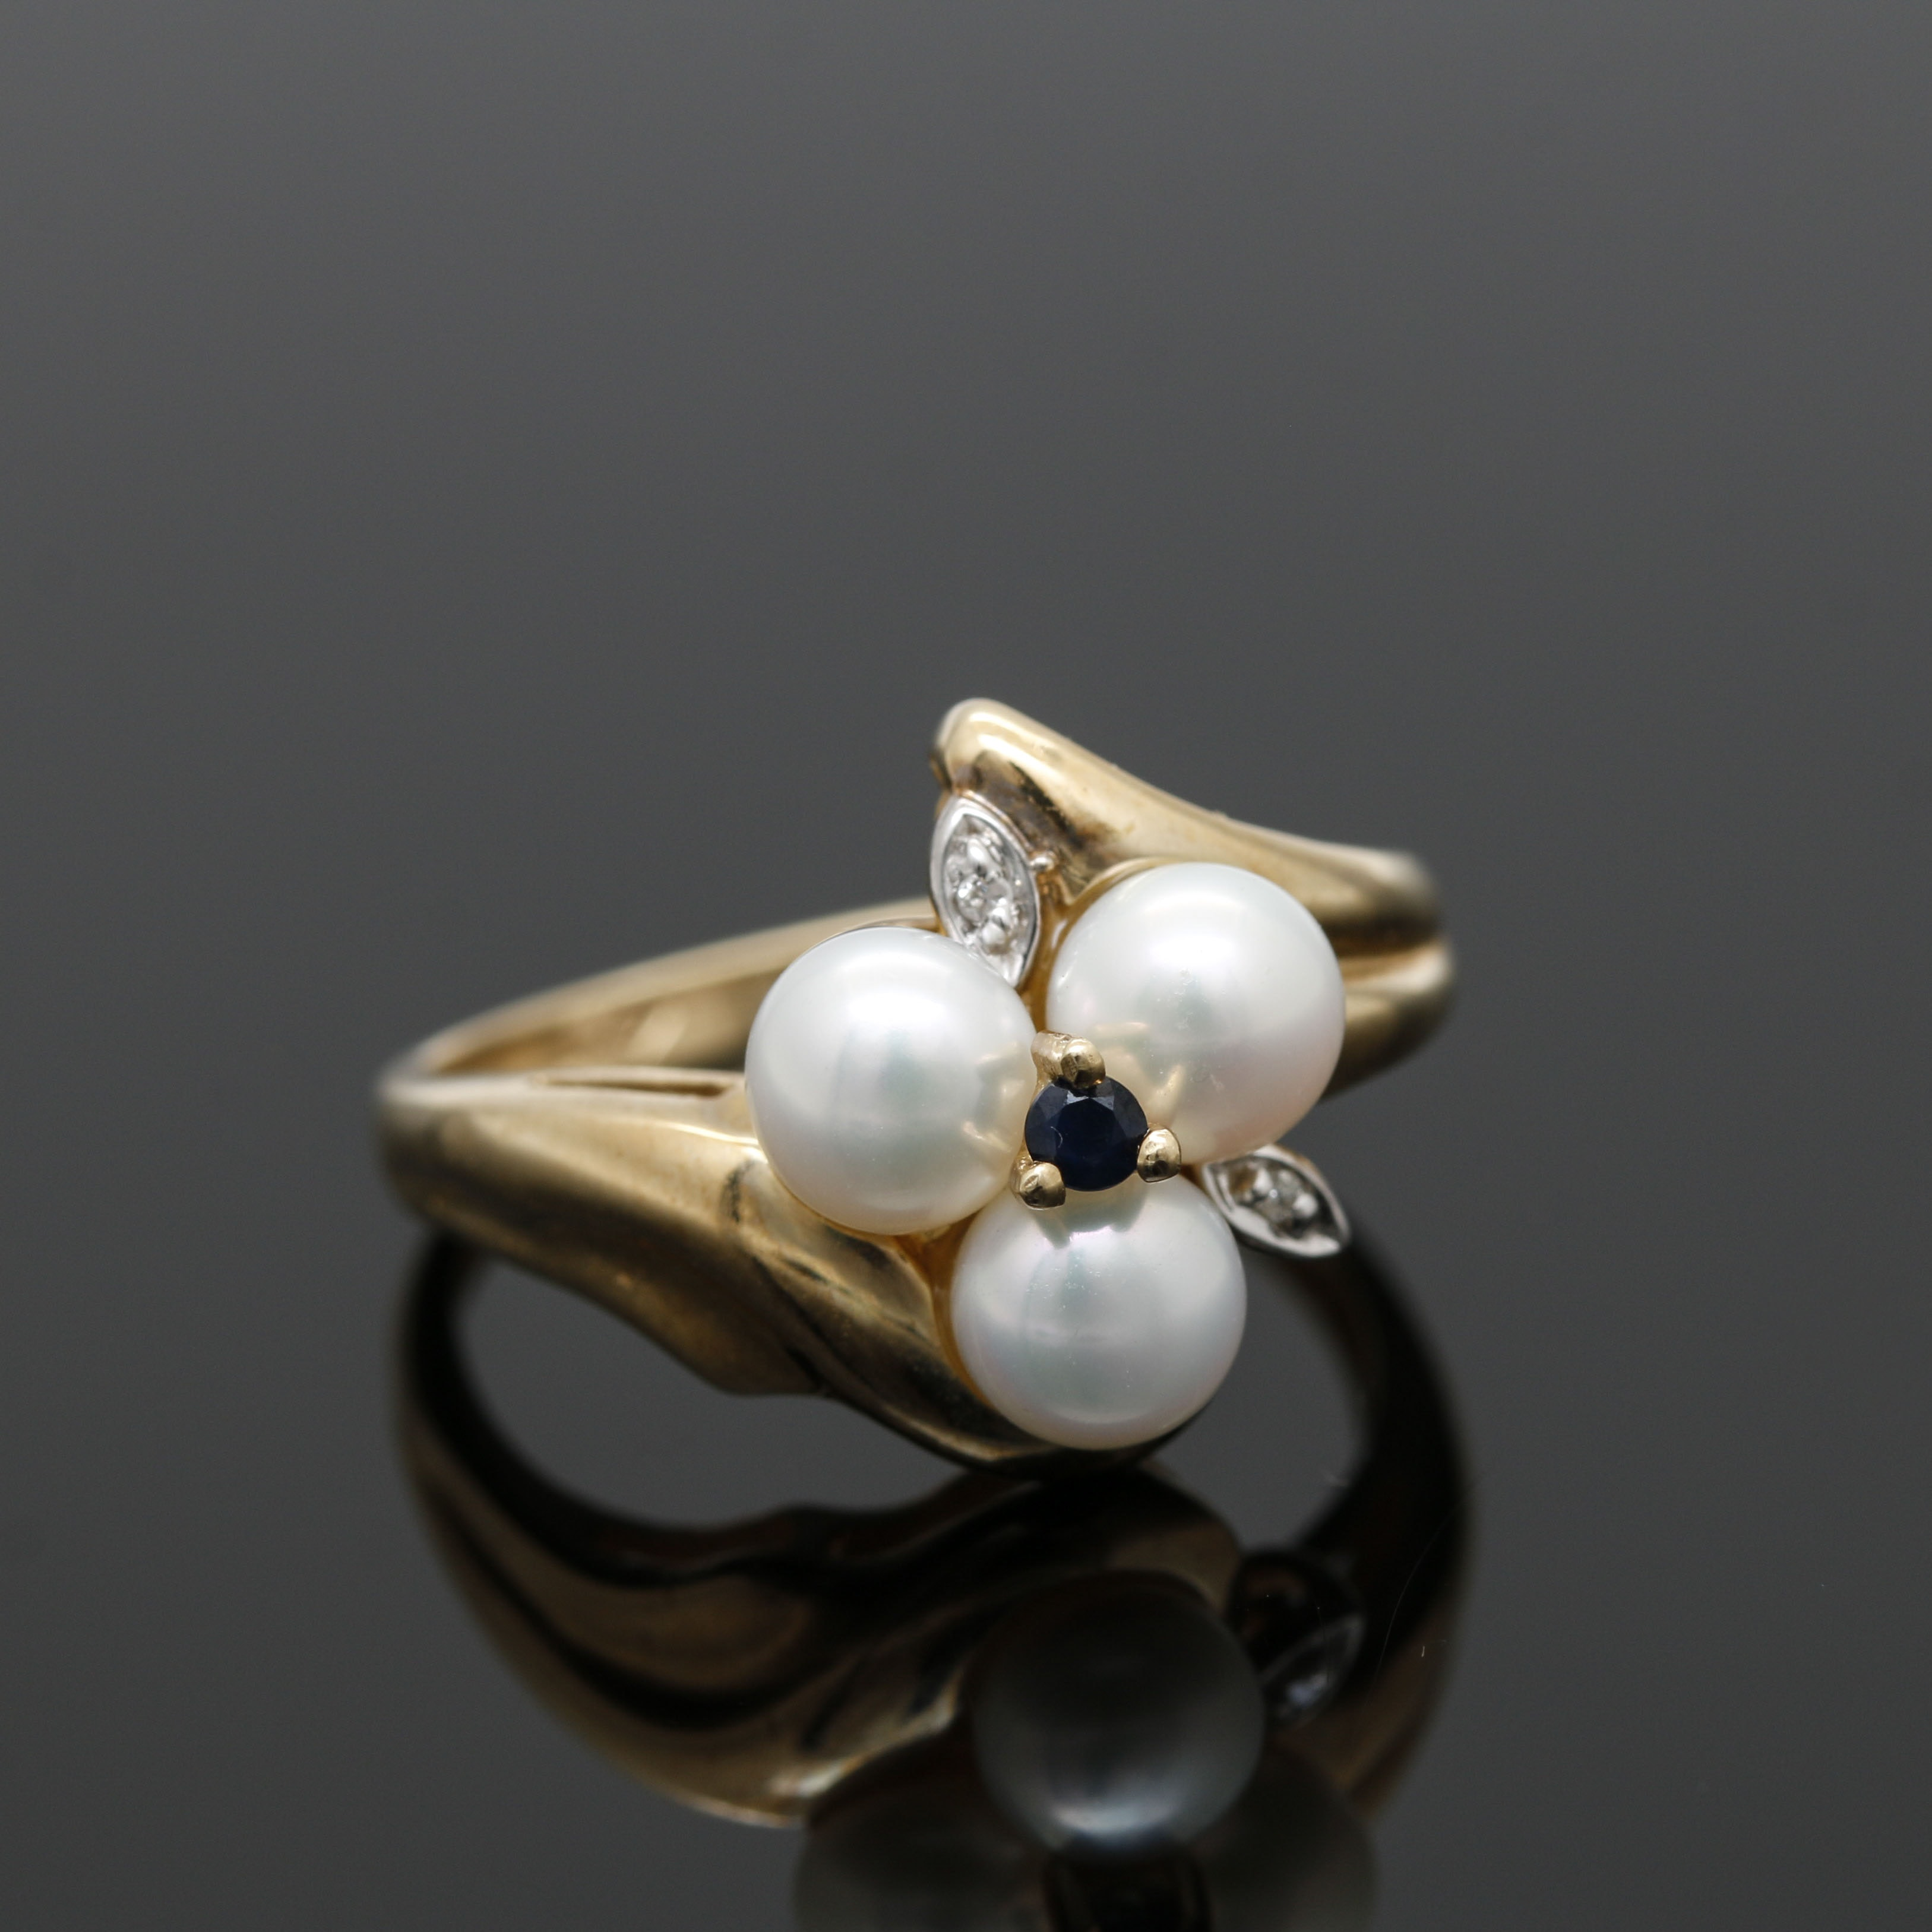 10K Yellow Gold Sapphire and Cultured Pearl Floral Ring with Diamond Accents